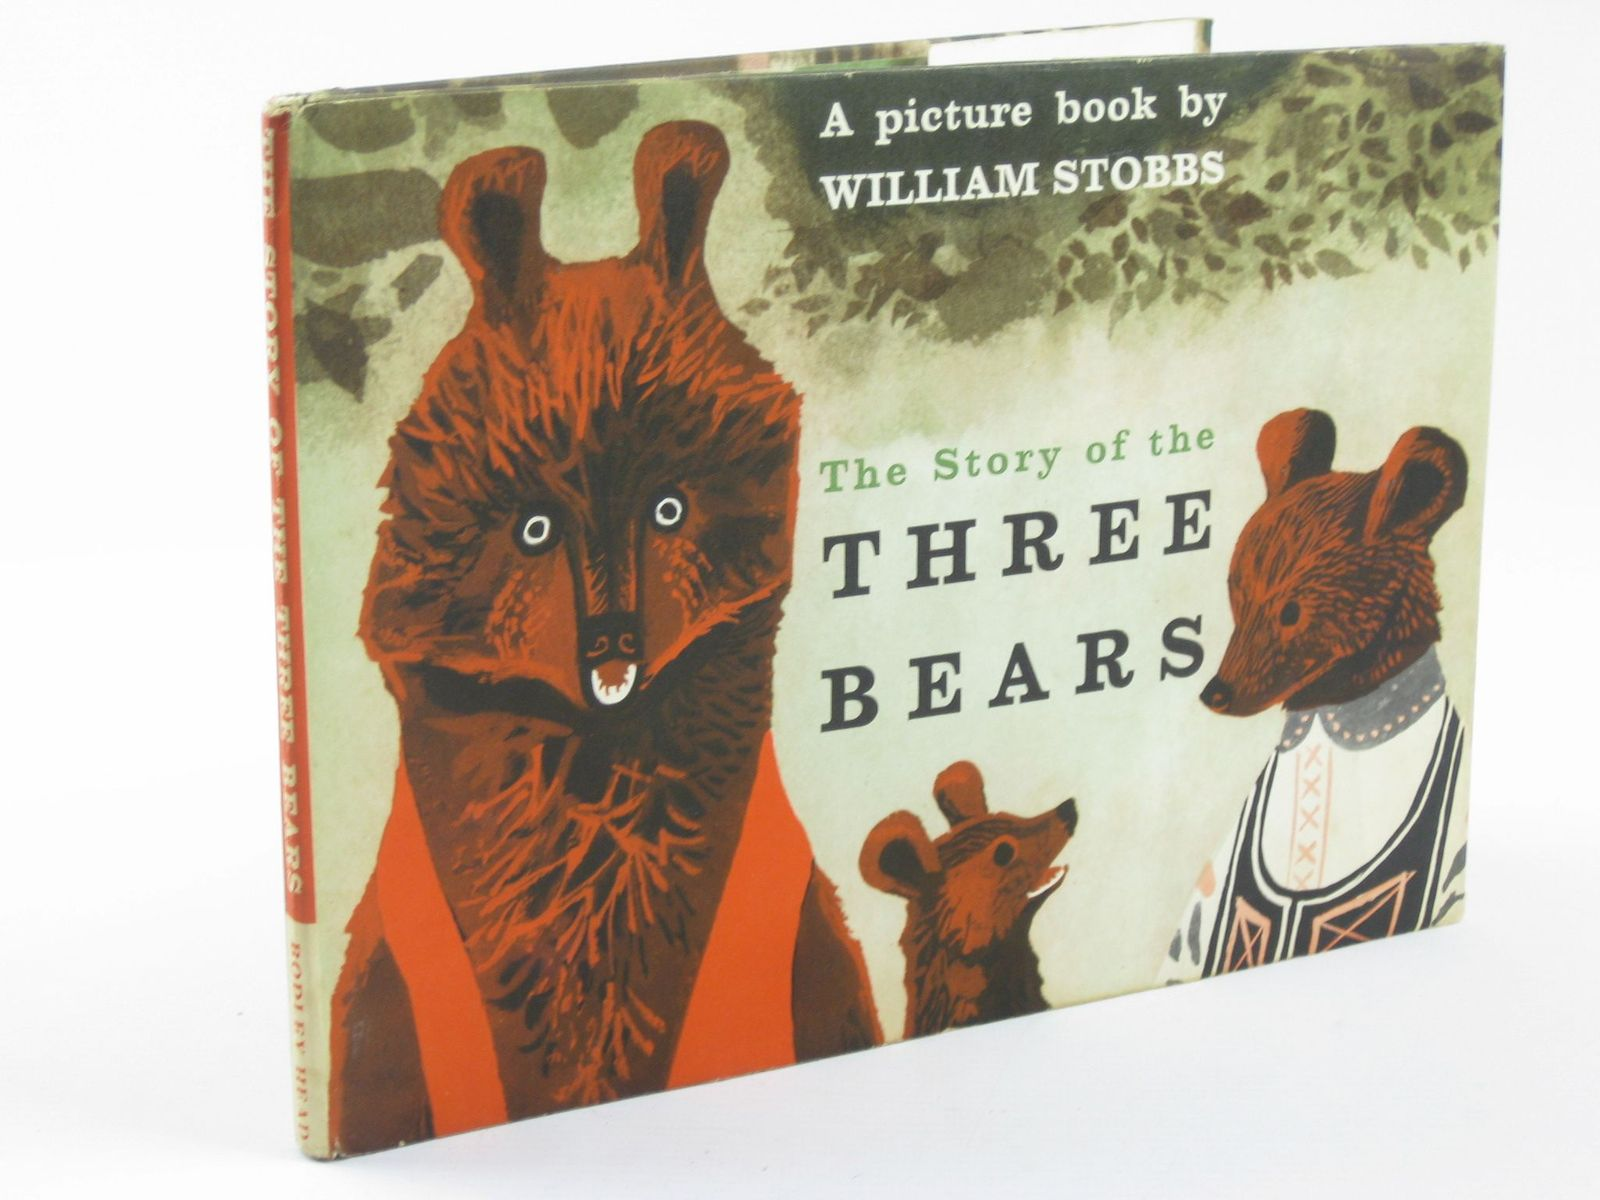 Photo of THE STORY OF THE THREE BEARS written by Stobbs, William illustrated by Stobbs, William published by The Bodley Head (STOCK CODE: 1501680)  for sale by Stella & Rose's Books